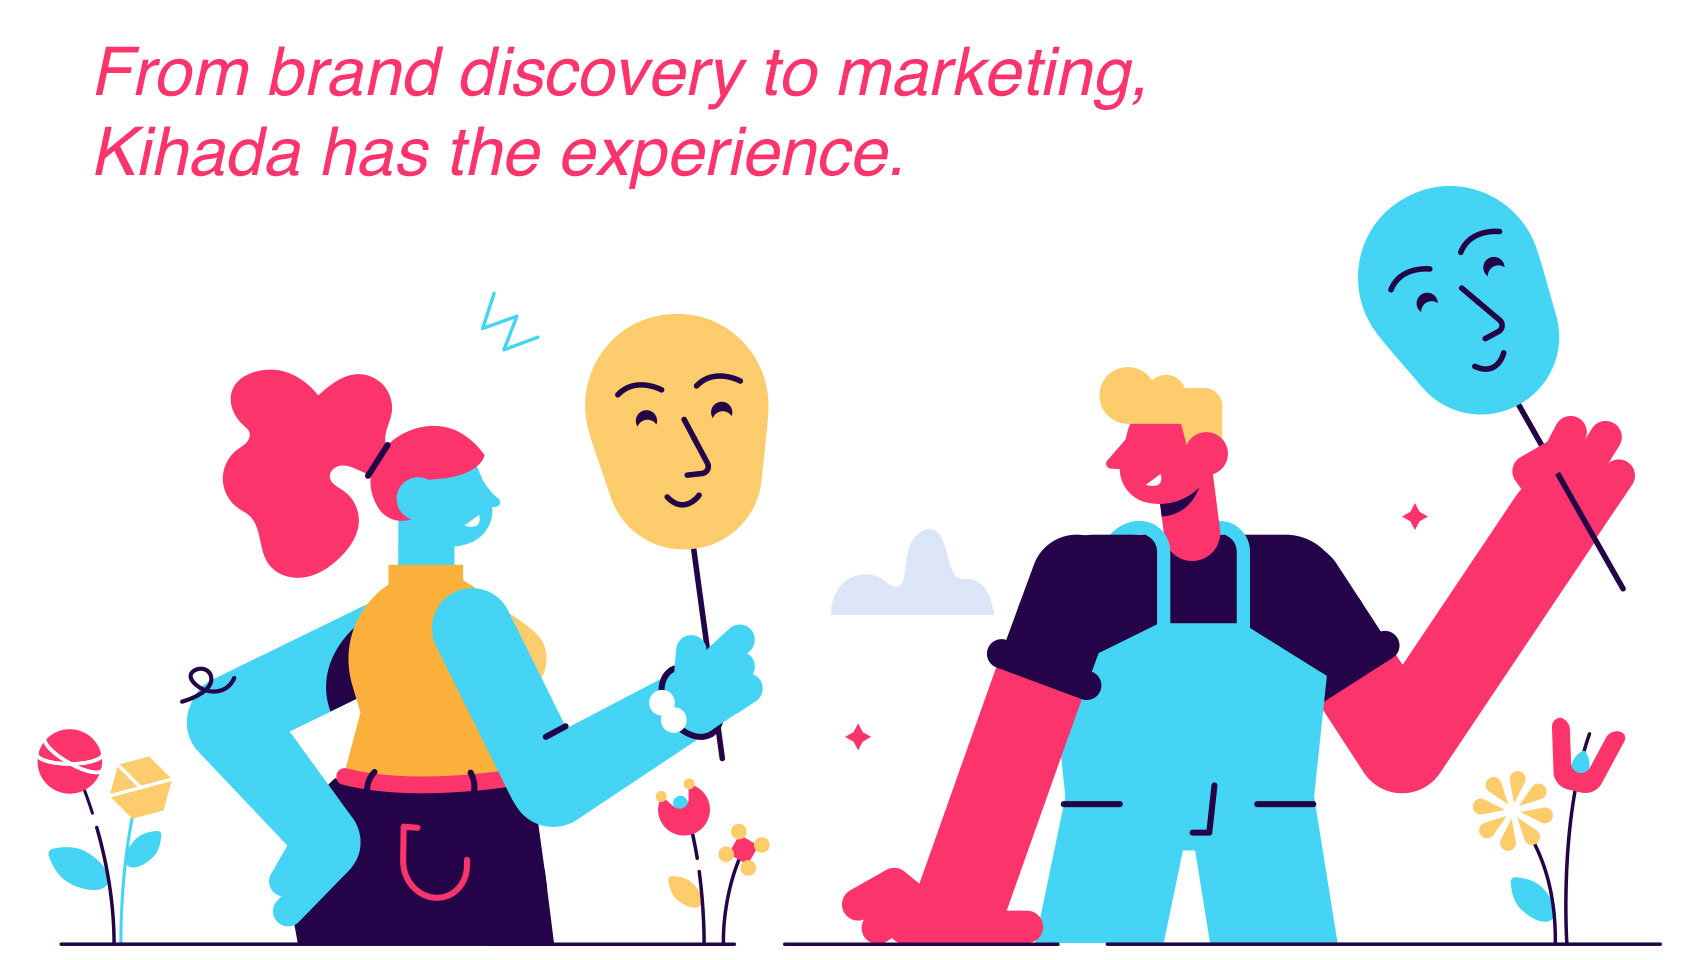 from brand discovery to marketing kihada has the experience